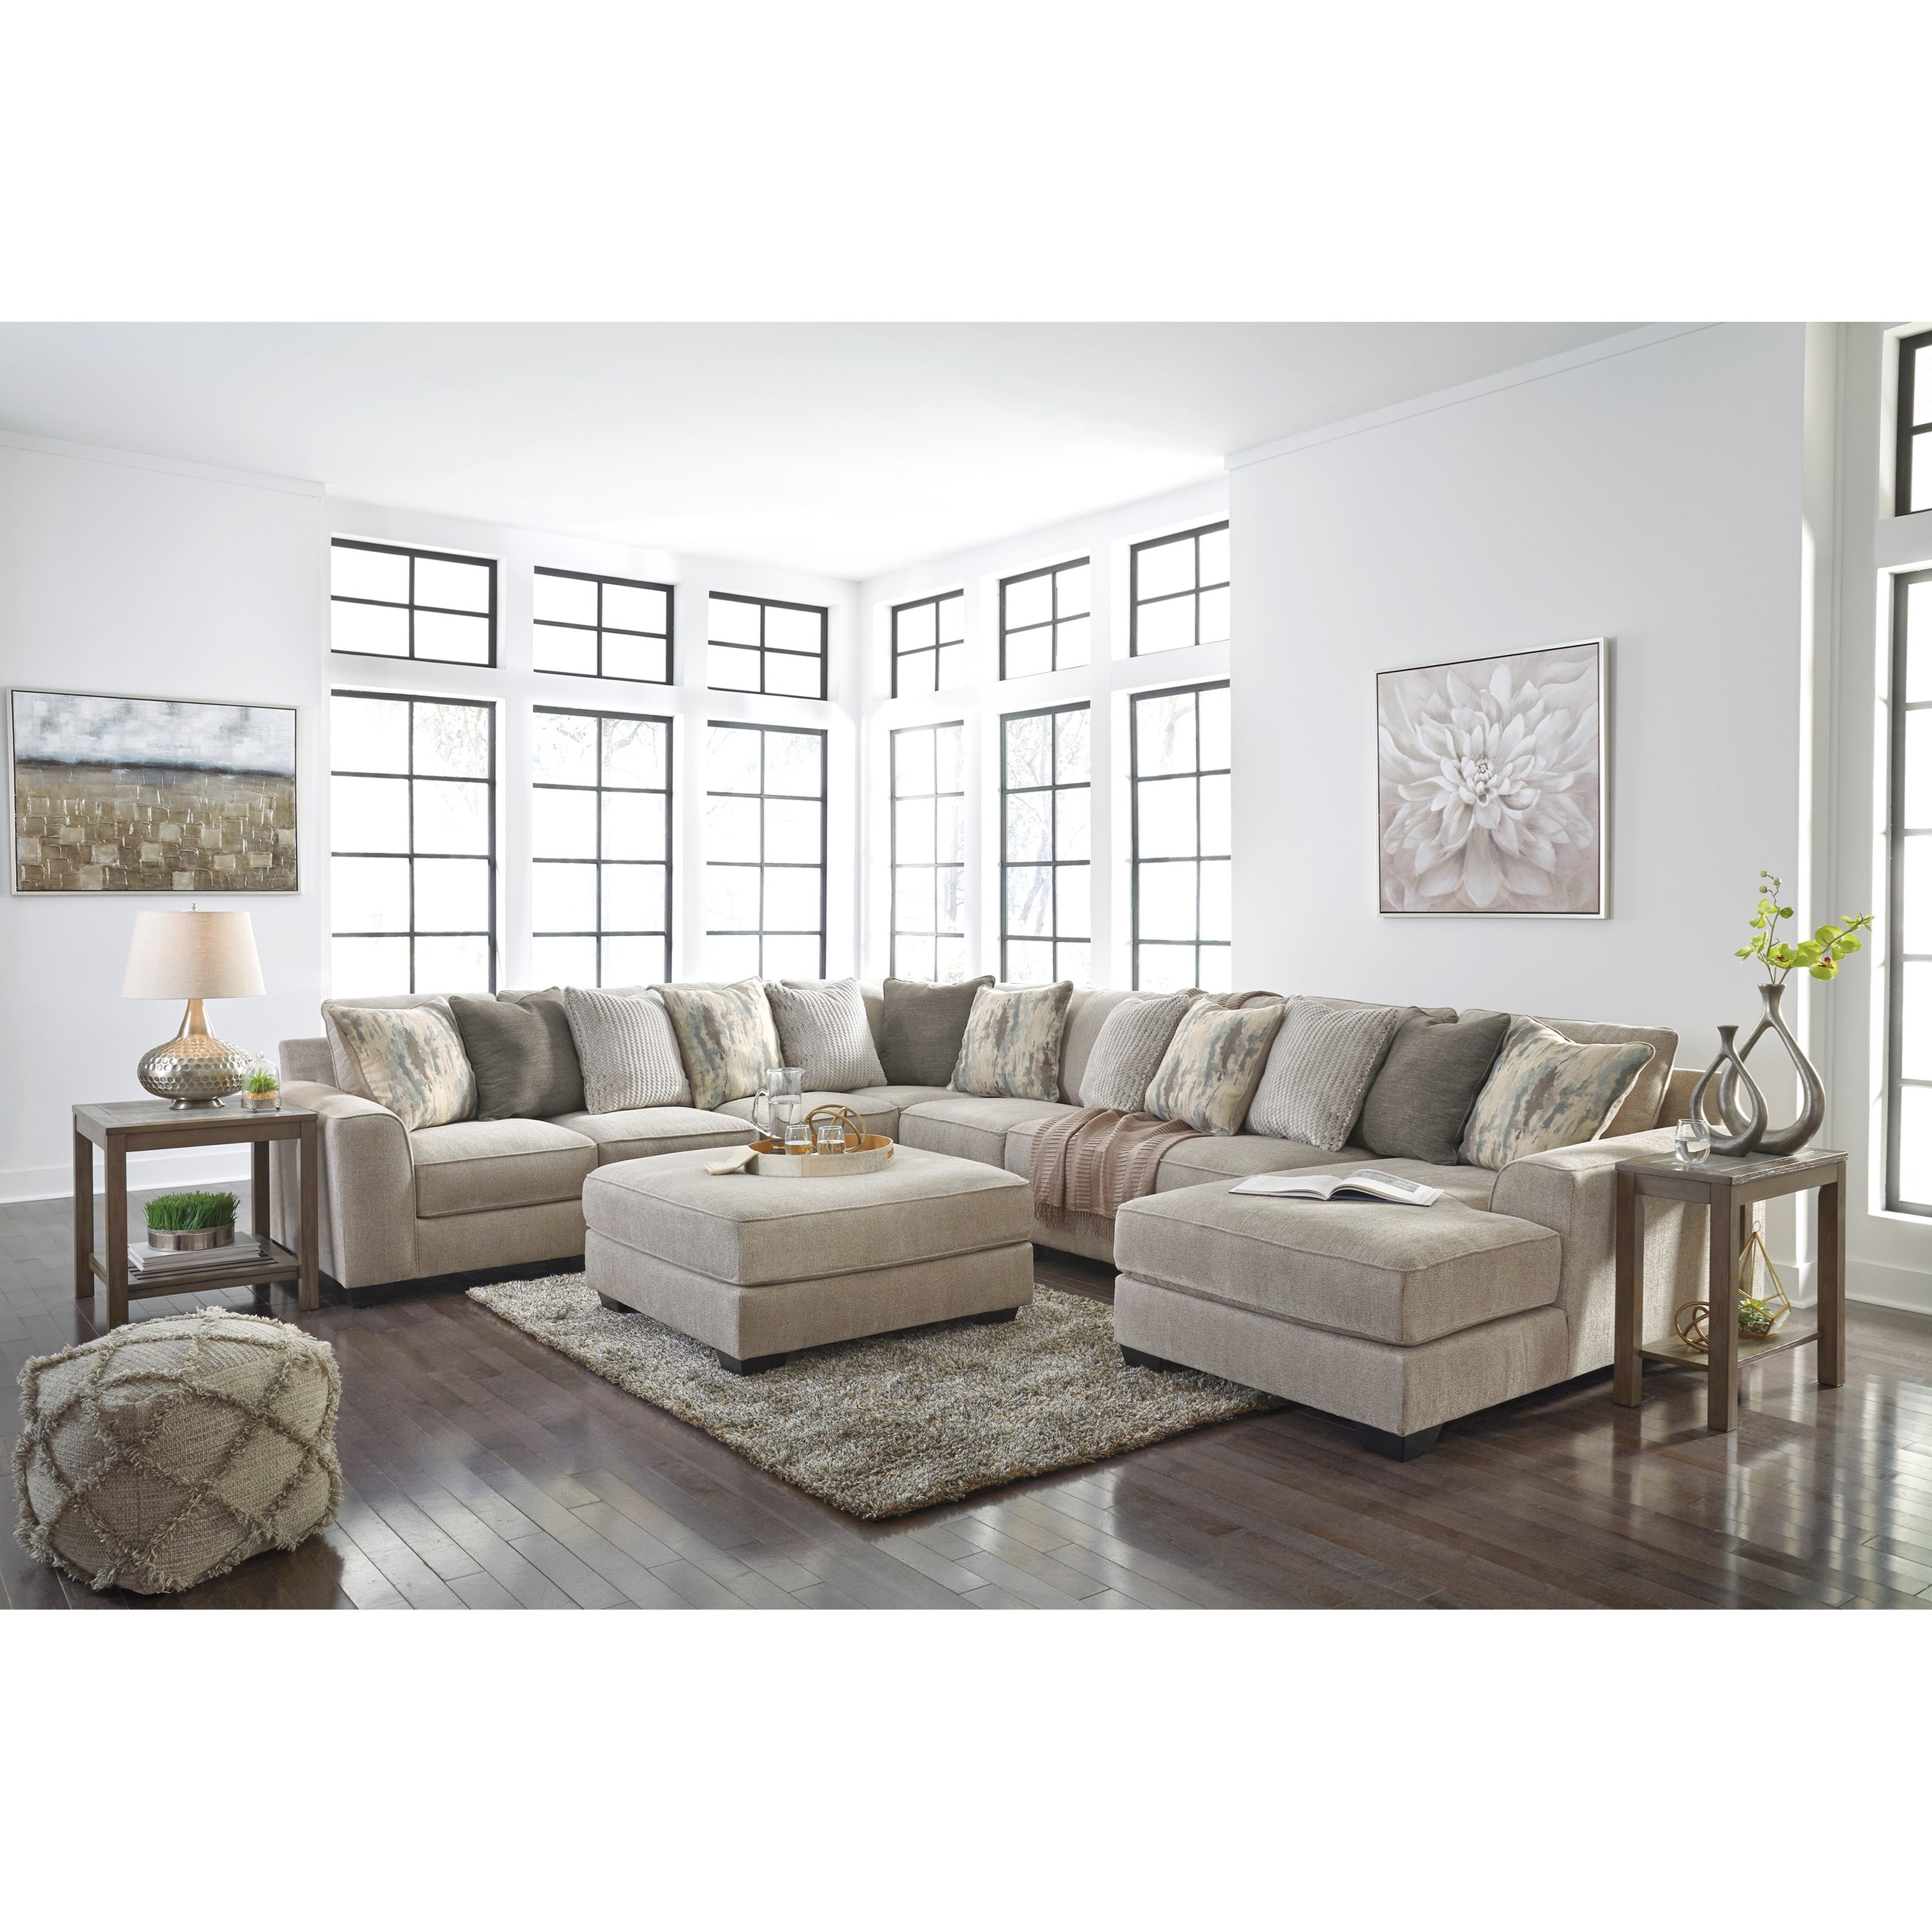 Ardsley Stationary Living Room Group by Benchcraft at Rife's Home Furniture